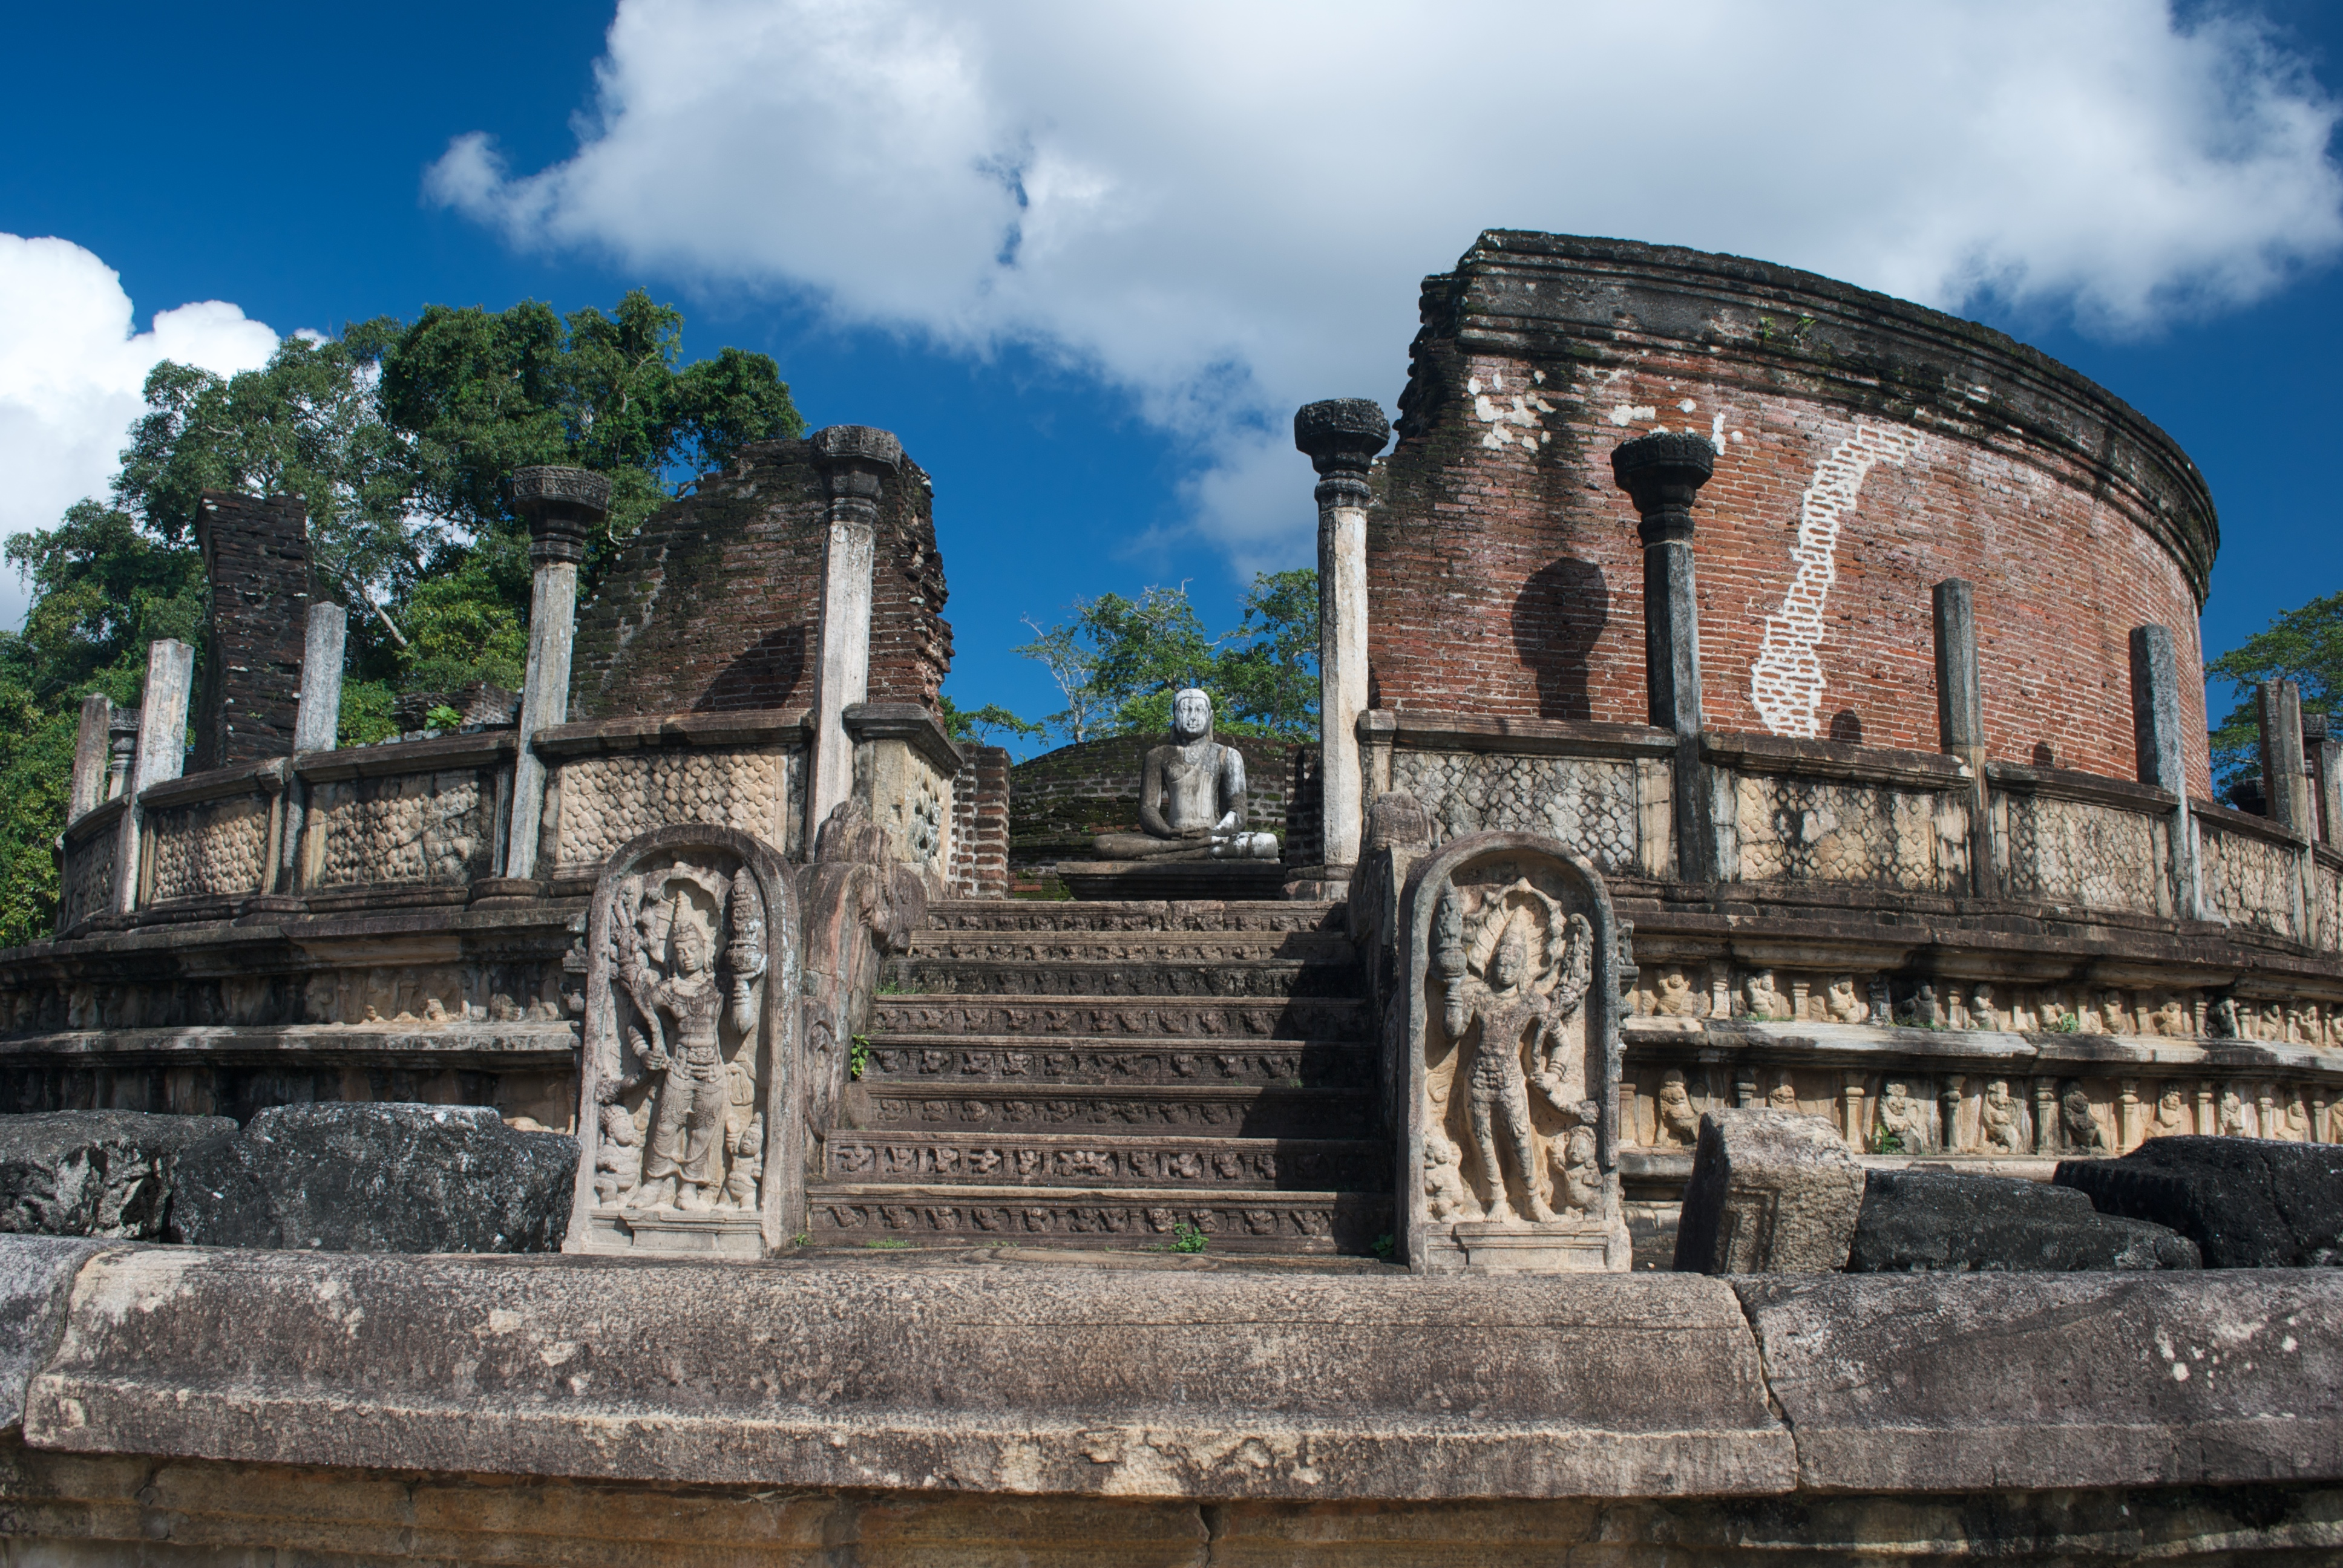 Polonnaruwa Sri Lanka  city images : Polonnaruwa Vatadage Wikipedia, the free encyclopedia